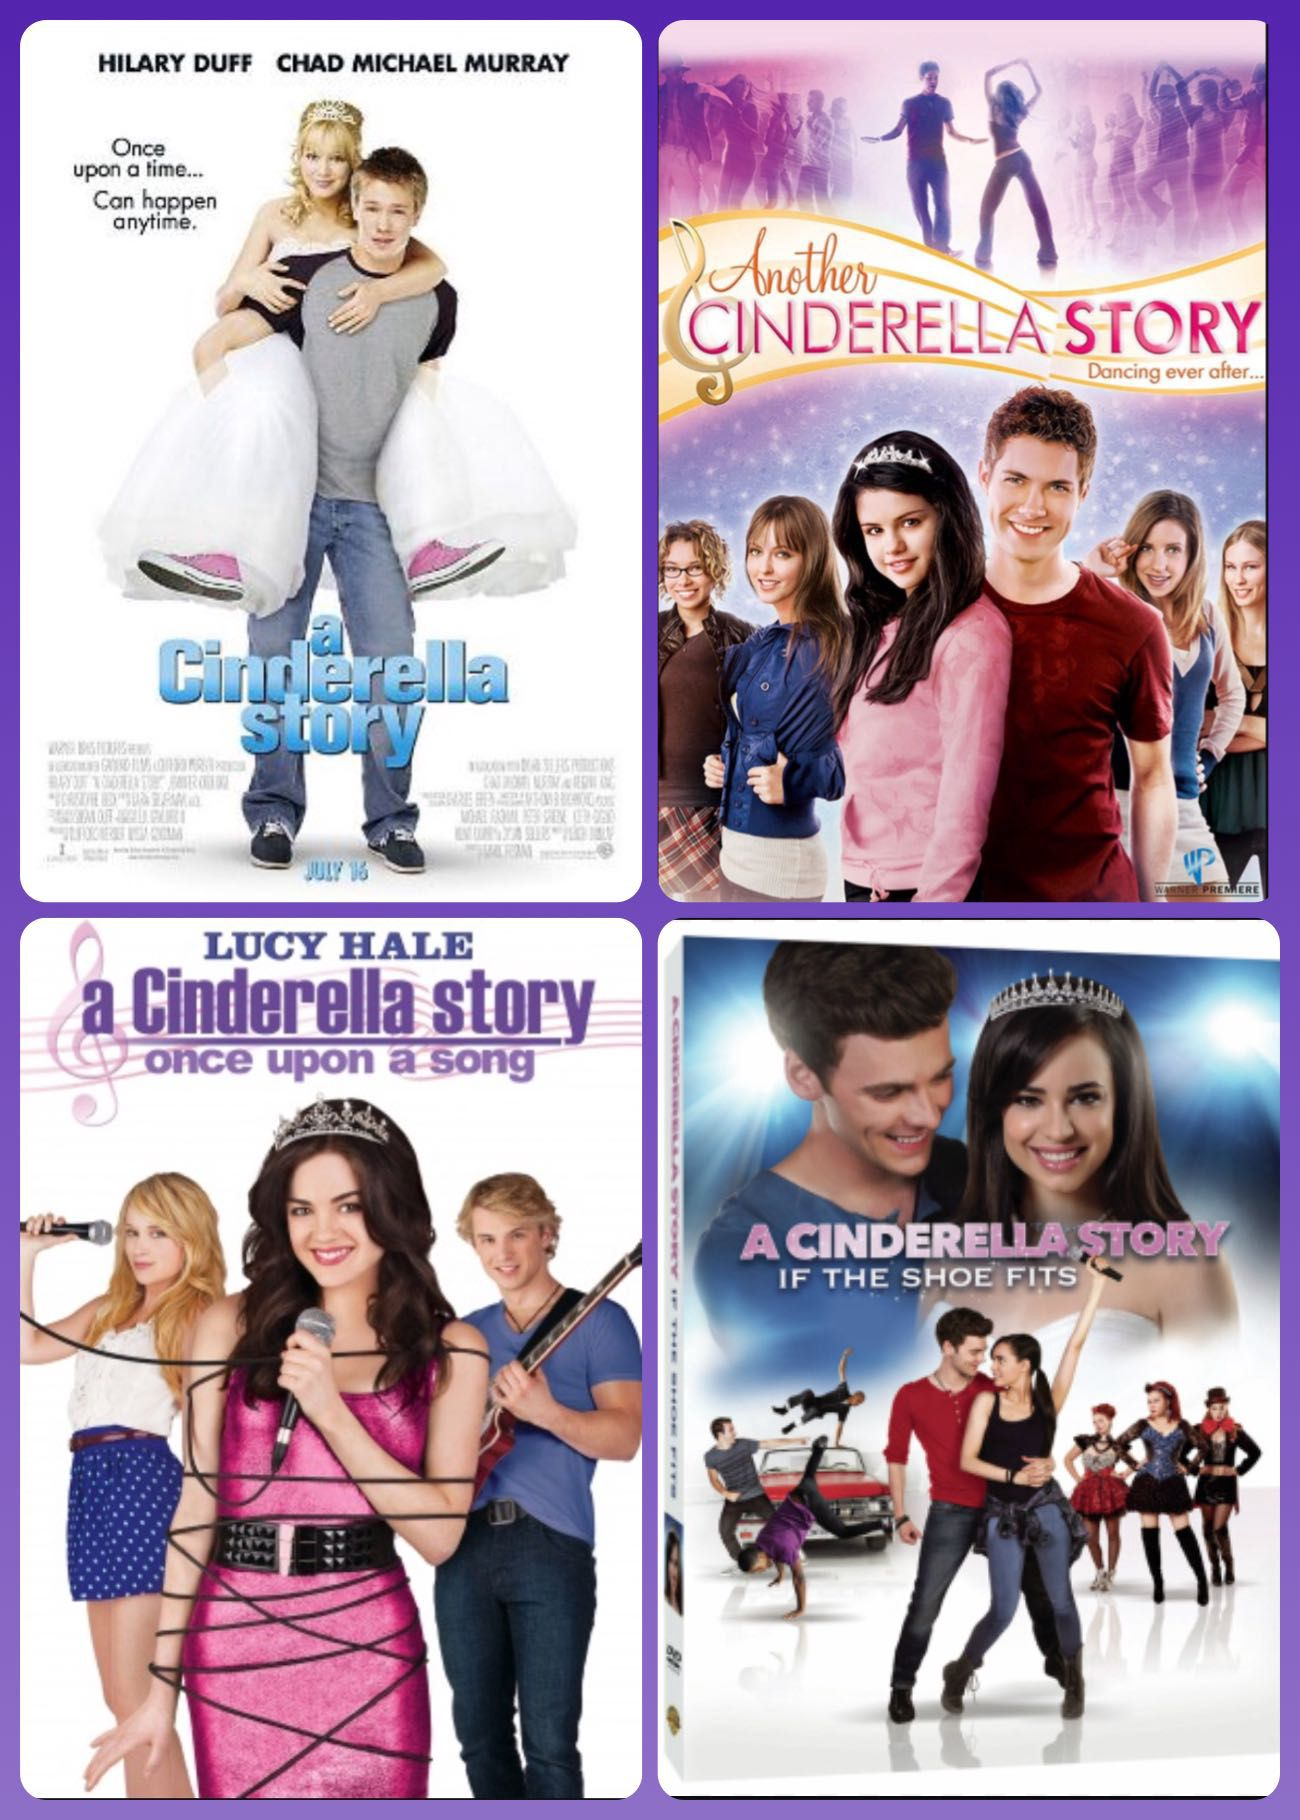 A Cinderella Story If The Shoe Fits Rotten Tomatoes